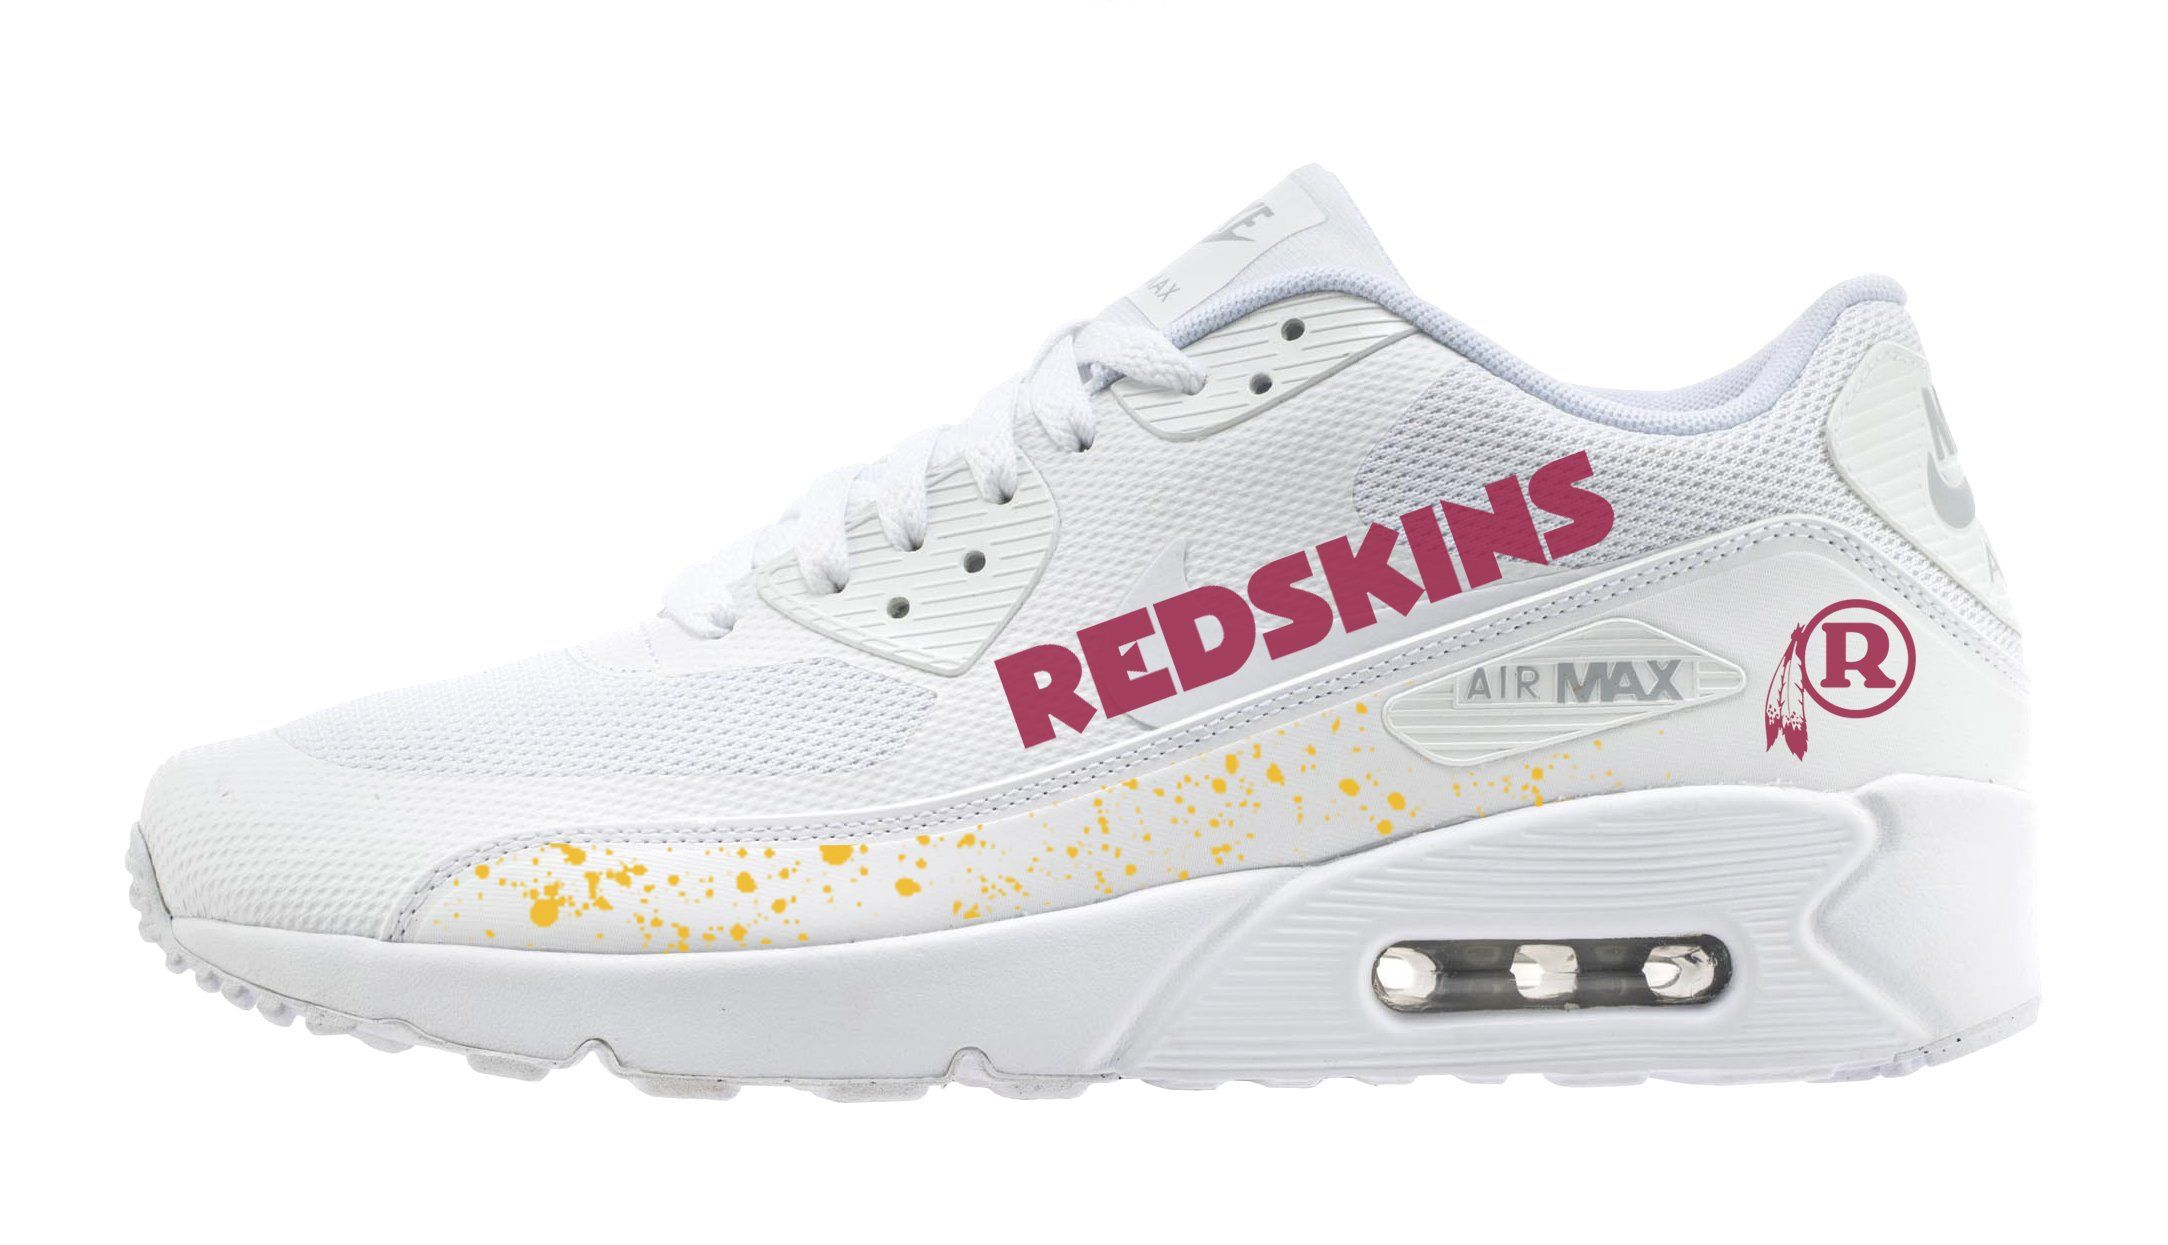 newest collection 729ac 932be Customized Washington Redskins Nike Sneakers, Men s, White Nike Sneakers, Air  Max Sneakers,